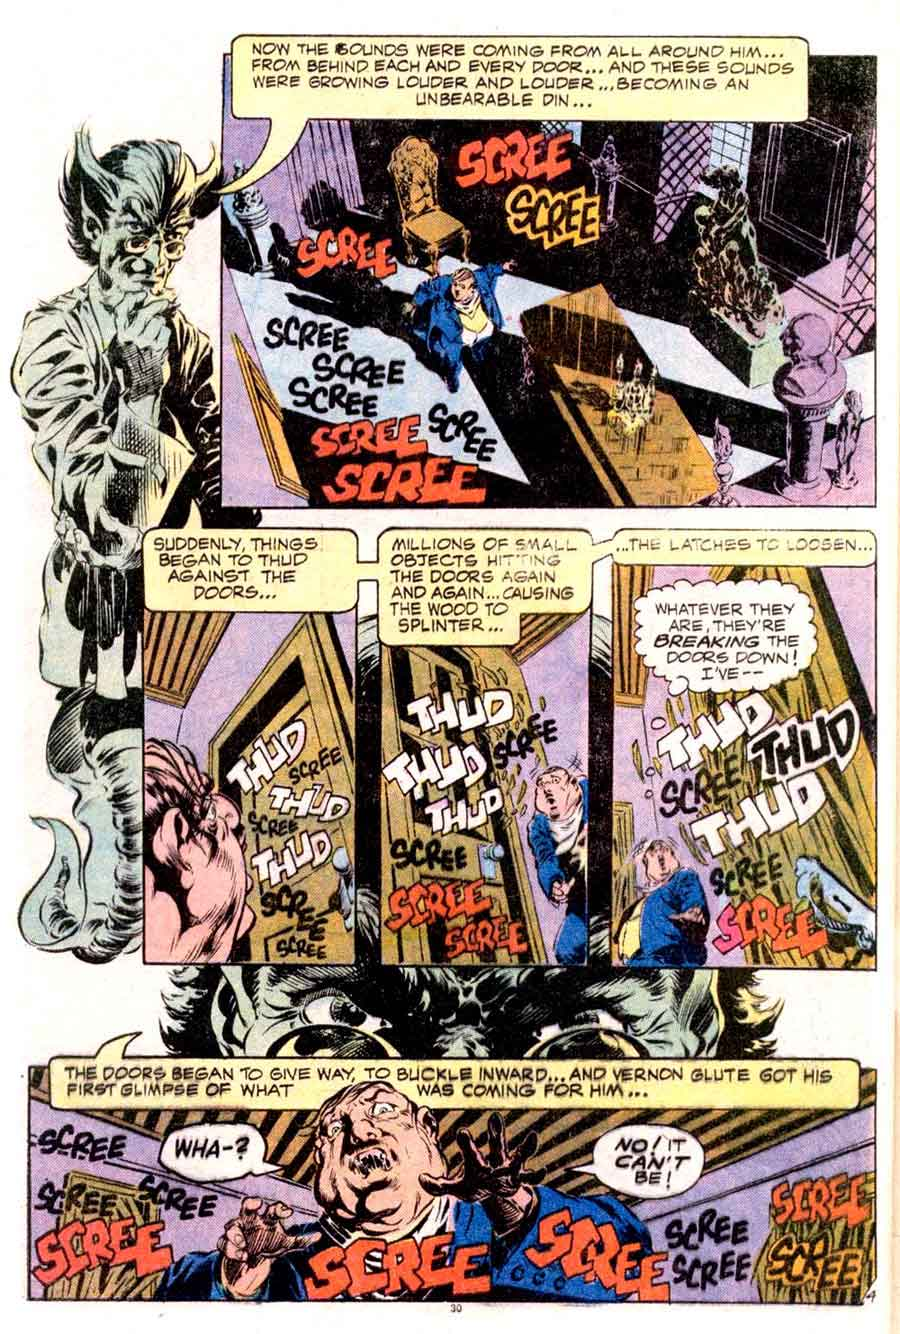 Plop v1 #1 dc 1970s bronze age comic book page art by Bernie Wrightson